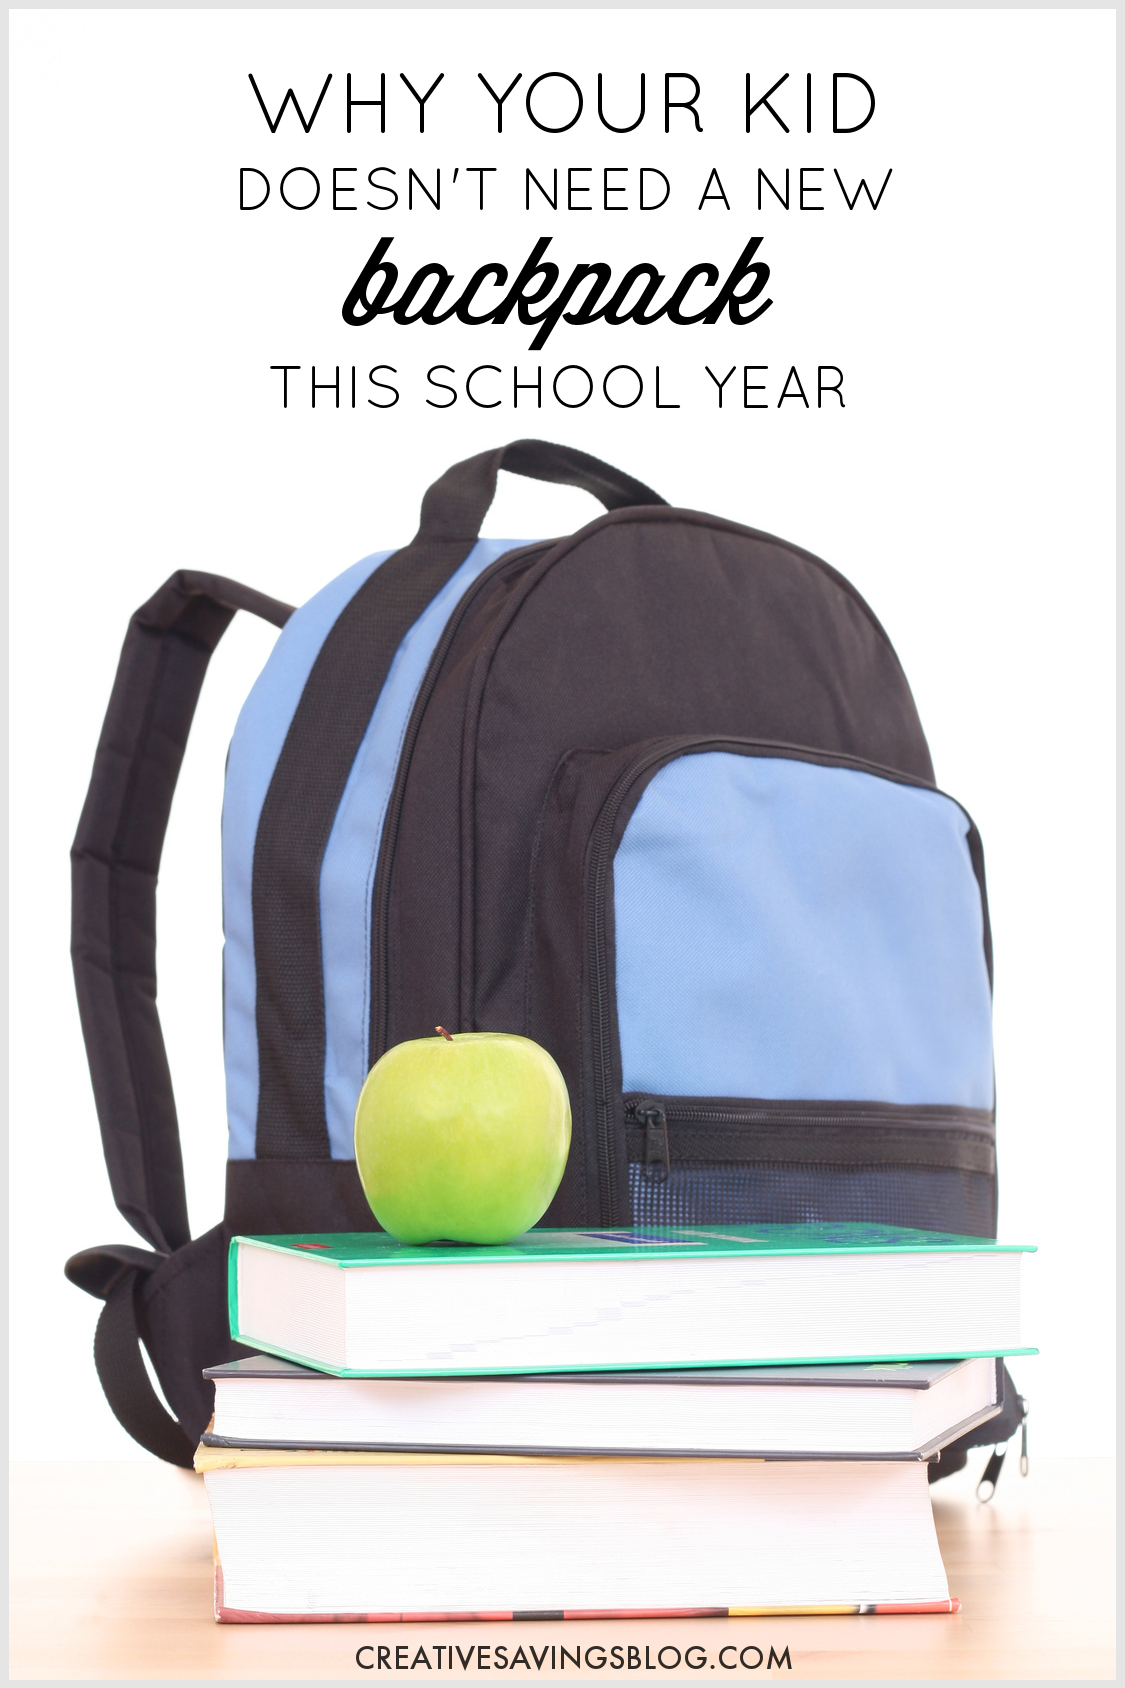 The pressure to buy brand new back to school supplies is ON this time of year, but do our kids really need all that stuff? Here's why your child can do without the latest and greatest, as well as how NOT to spend quite as much. #schoolyear #kidschoolaccessories #newbackpack #newschoolyear #frugalliving